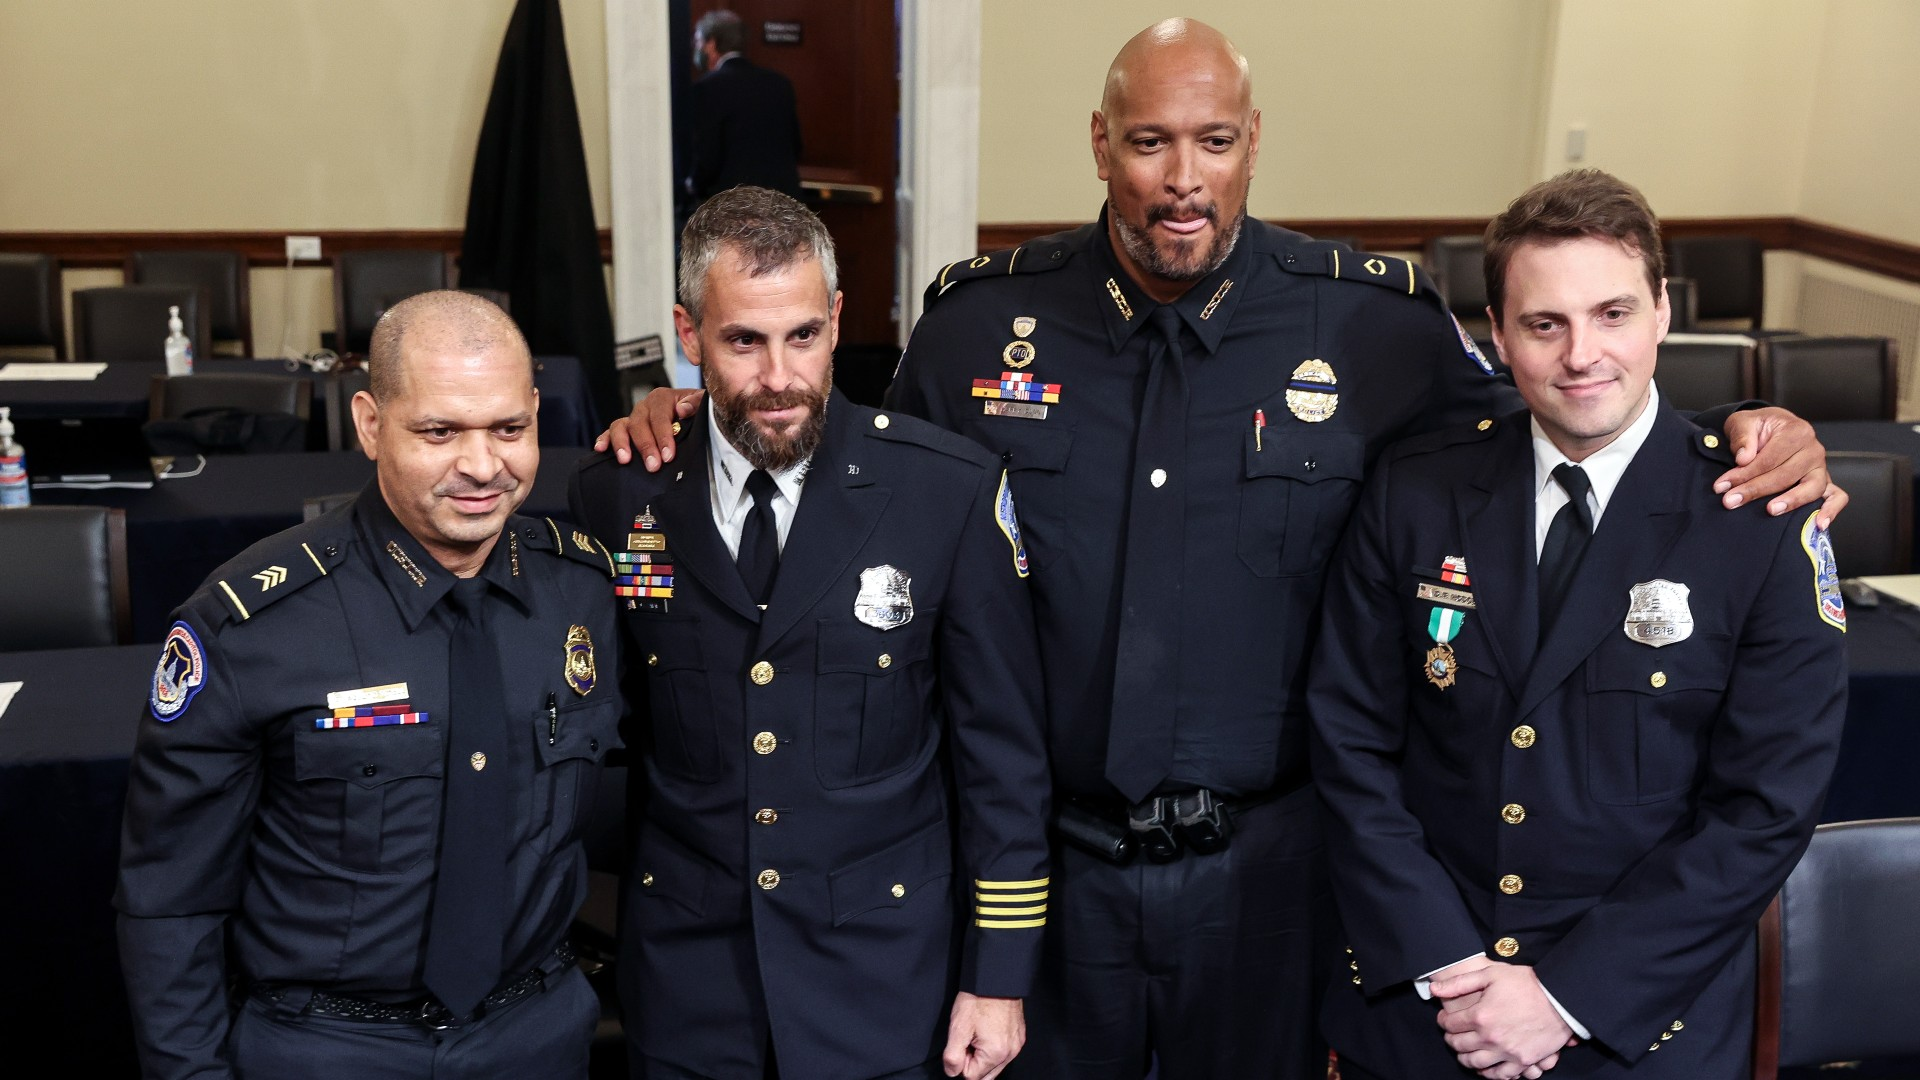 From left, U.S. Capitol Police Sgt. Aquilino Gonell, Washington Metropolitan Police Department officer Michael Fanone, U.S. Capitol Police Sgt. Harry Dunn and Washington Metropolitan Police Department officer Daniel Hodges pose for a photo after a House select committee hearing on the Jan. 6 attack on Capitol Hill in Washington, Tuesday, July 27, 2021. (Oliver Contreras/The New York Times via AP, Pool)